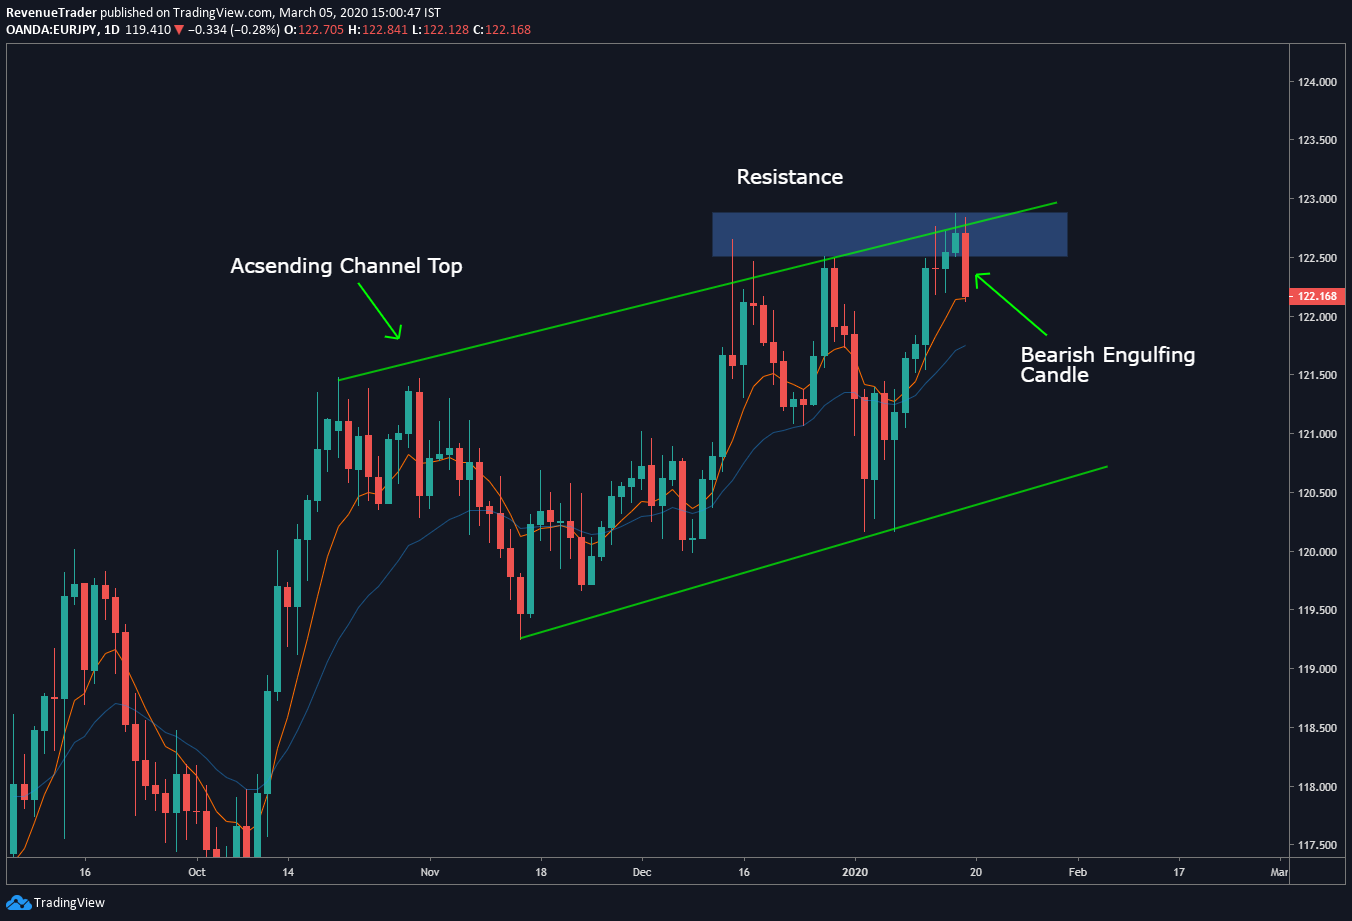 price is at resistance